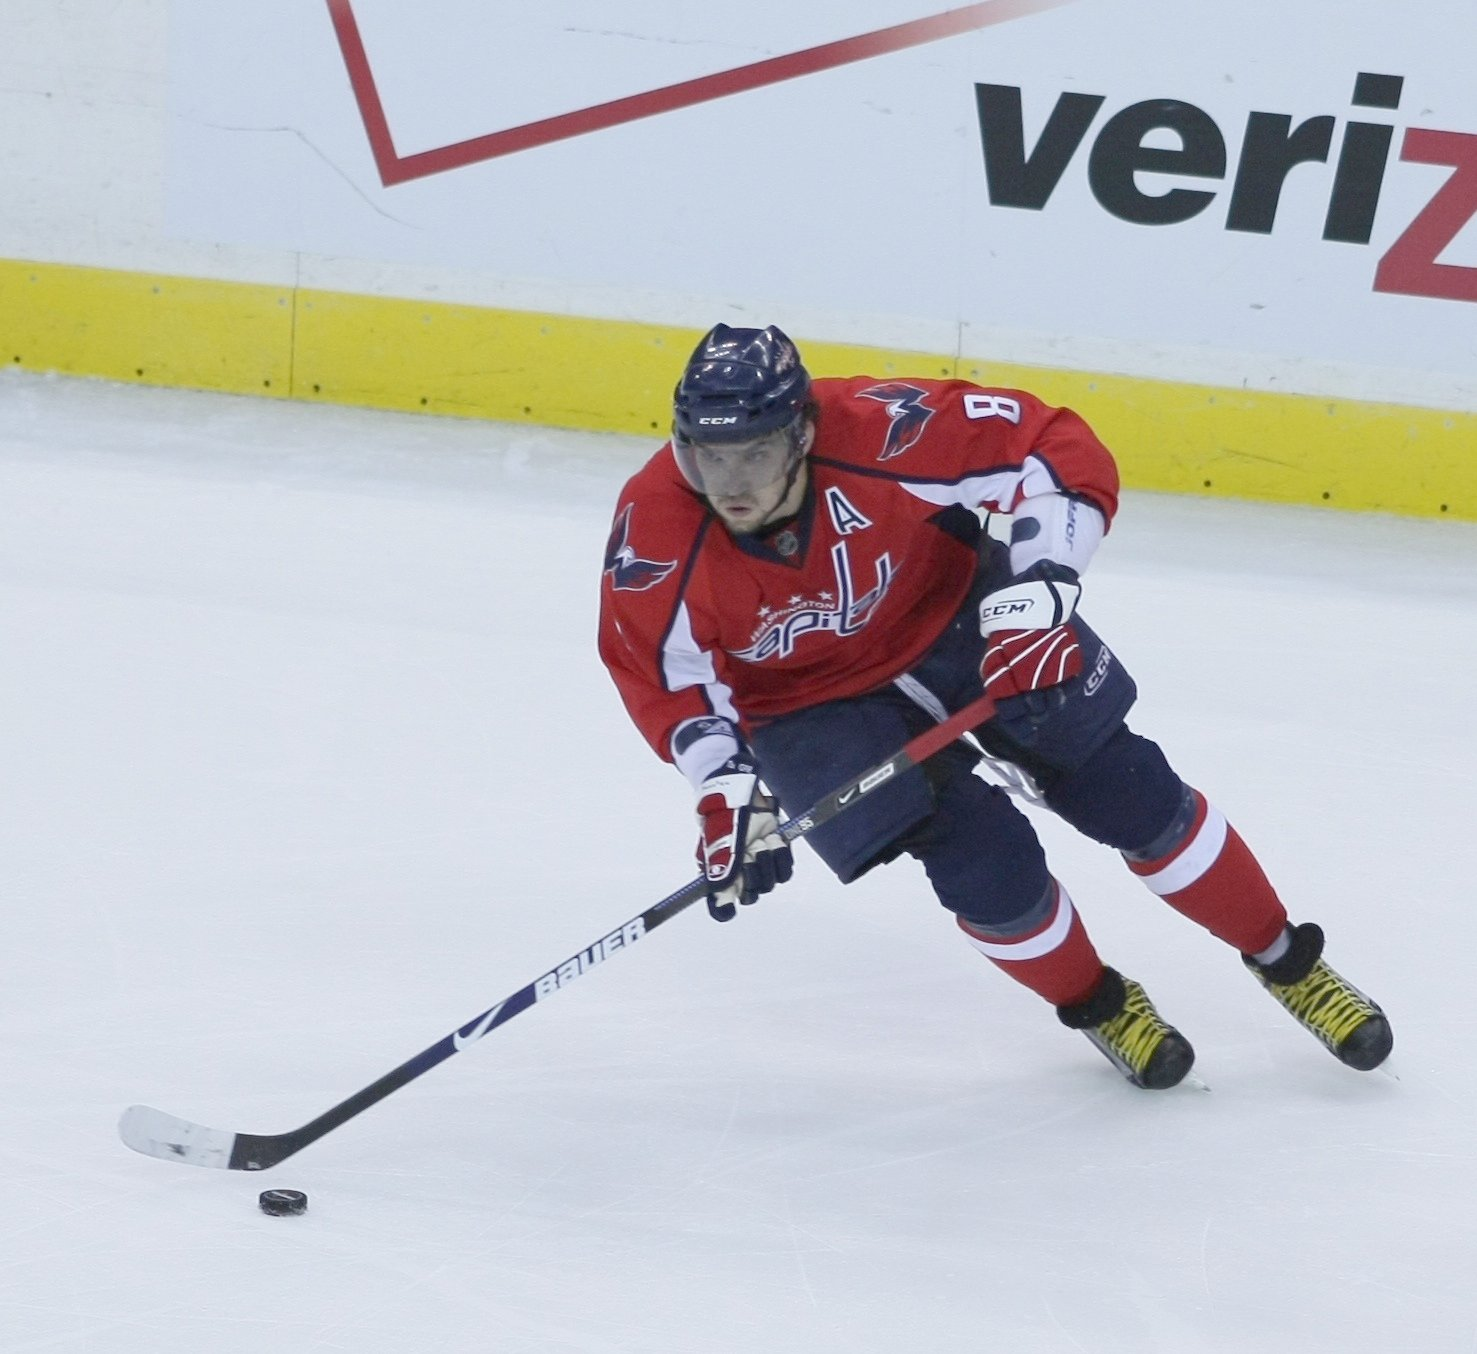 Captain Alexander Ovechkin skates with the puck in a regular season game. Ovechkin looks to lead the team to another Stanley Cup this season.